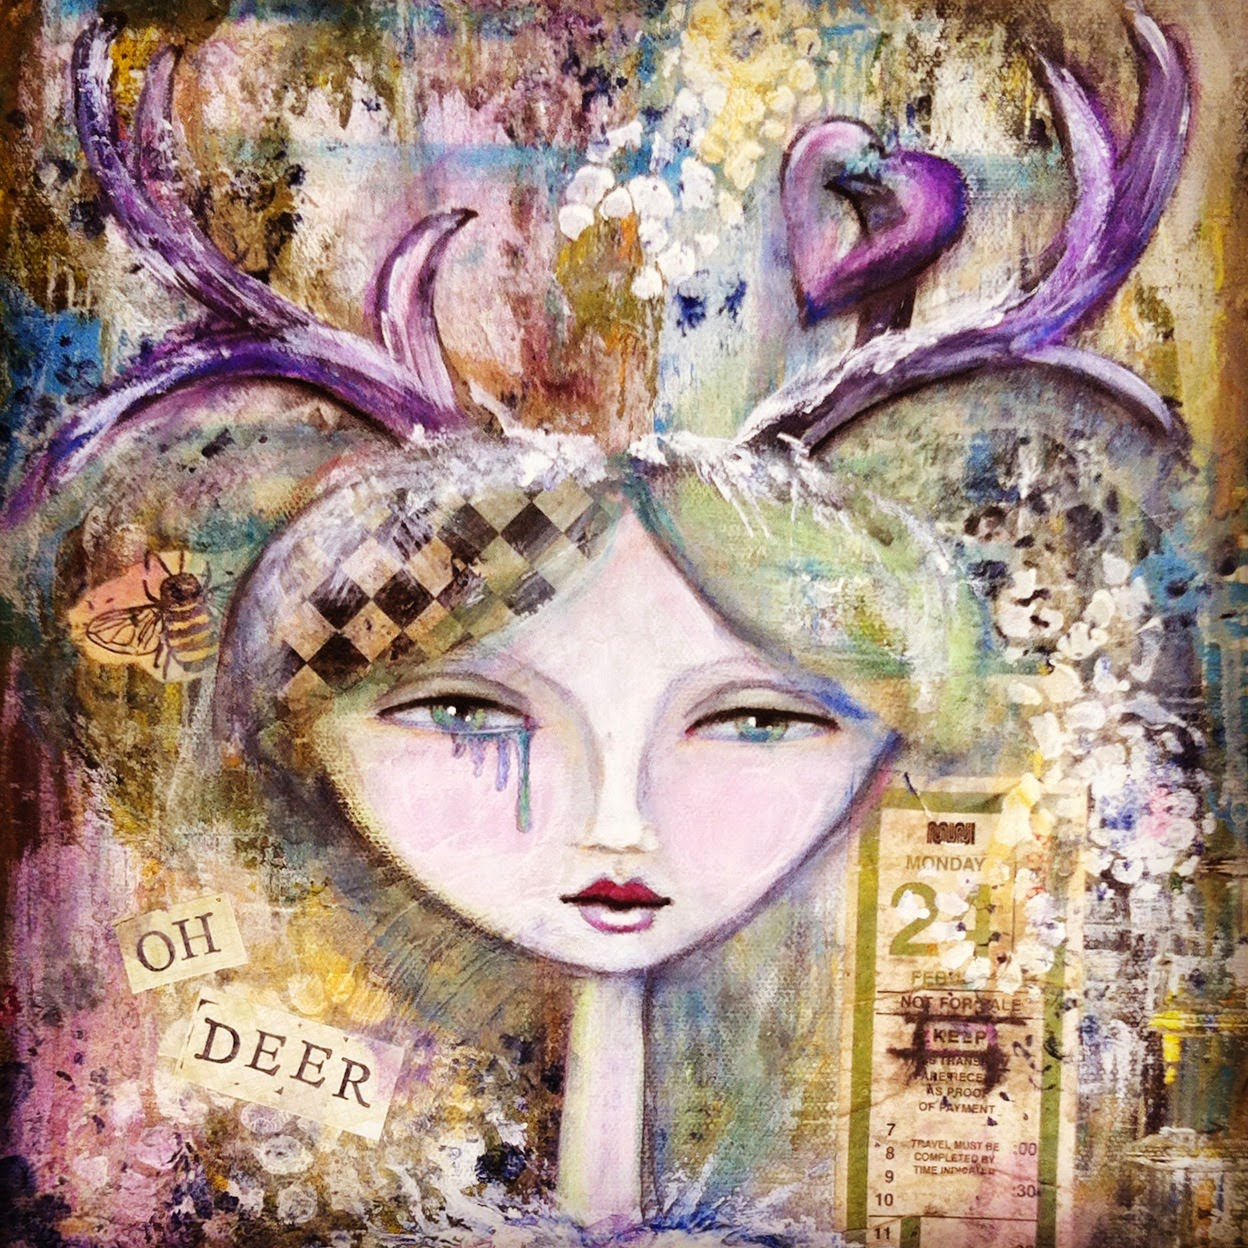 Mixed media girl with antlers and pierced heart